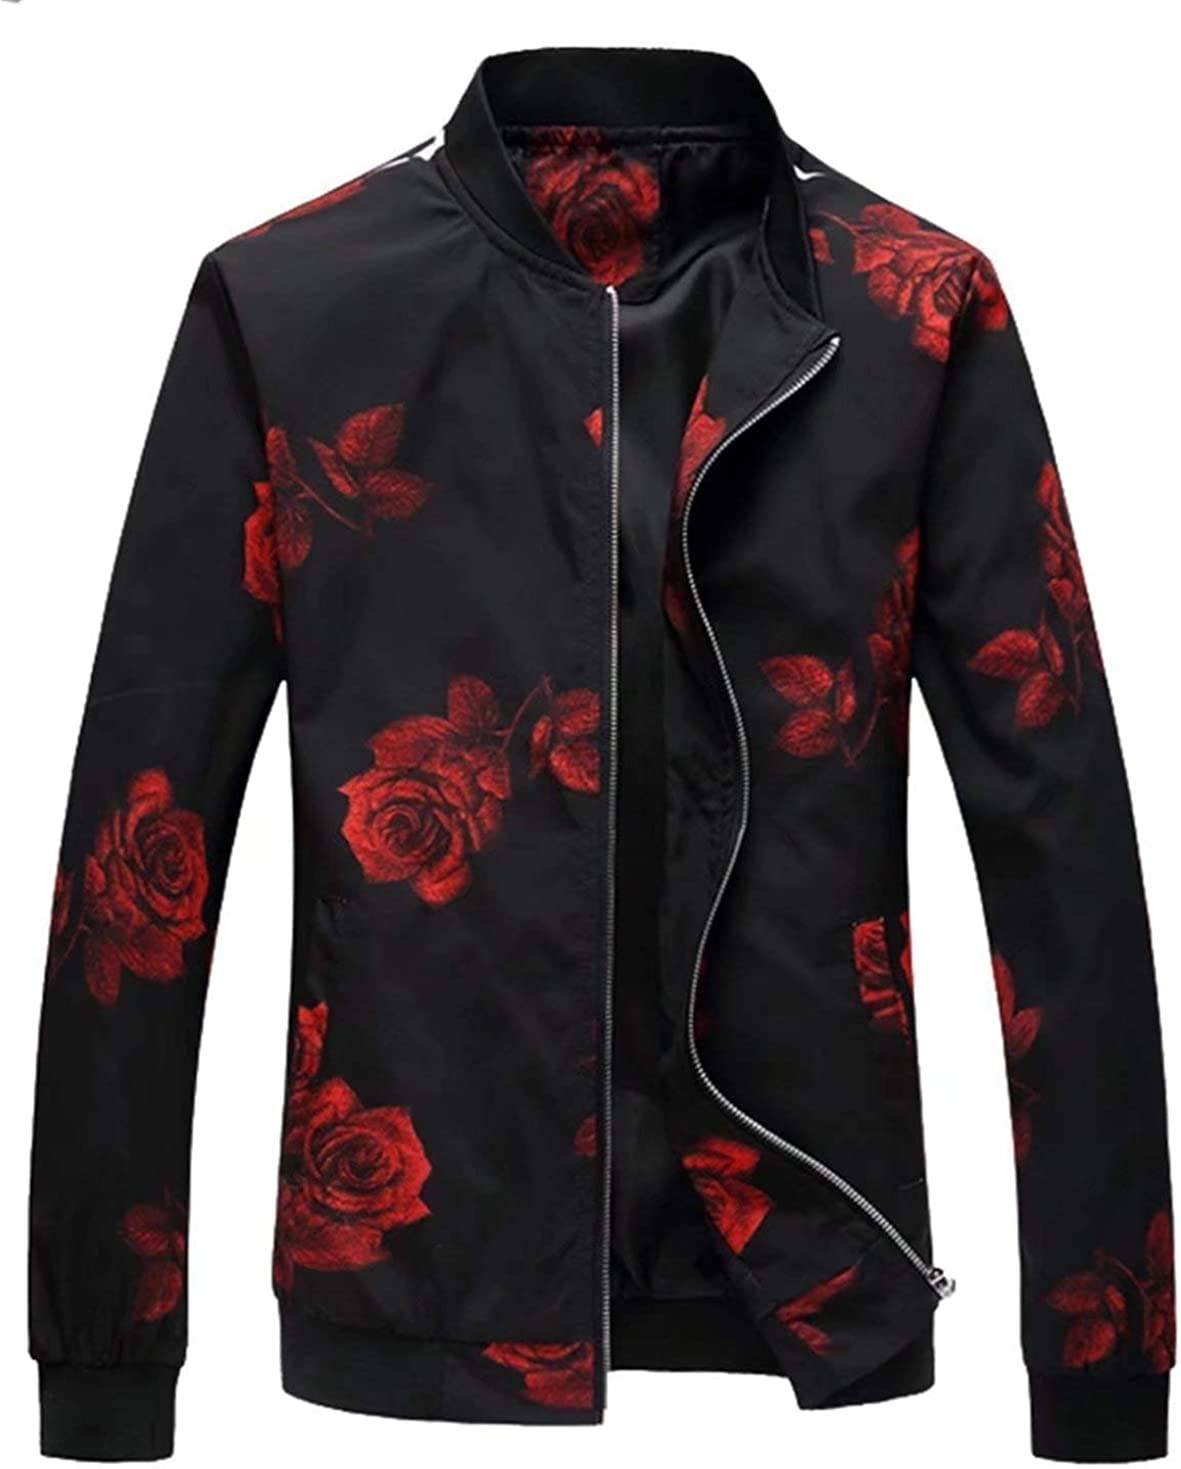 EMAOR Mens Casual Slim Be super welcome Fit Lightweight Printed Ranking TOP4 Jacket Coat Styl